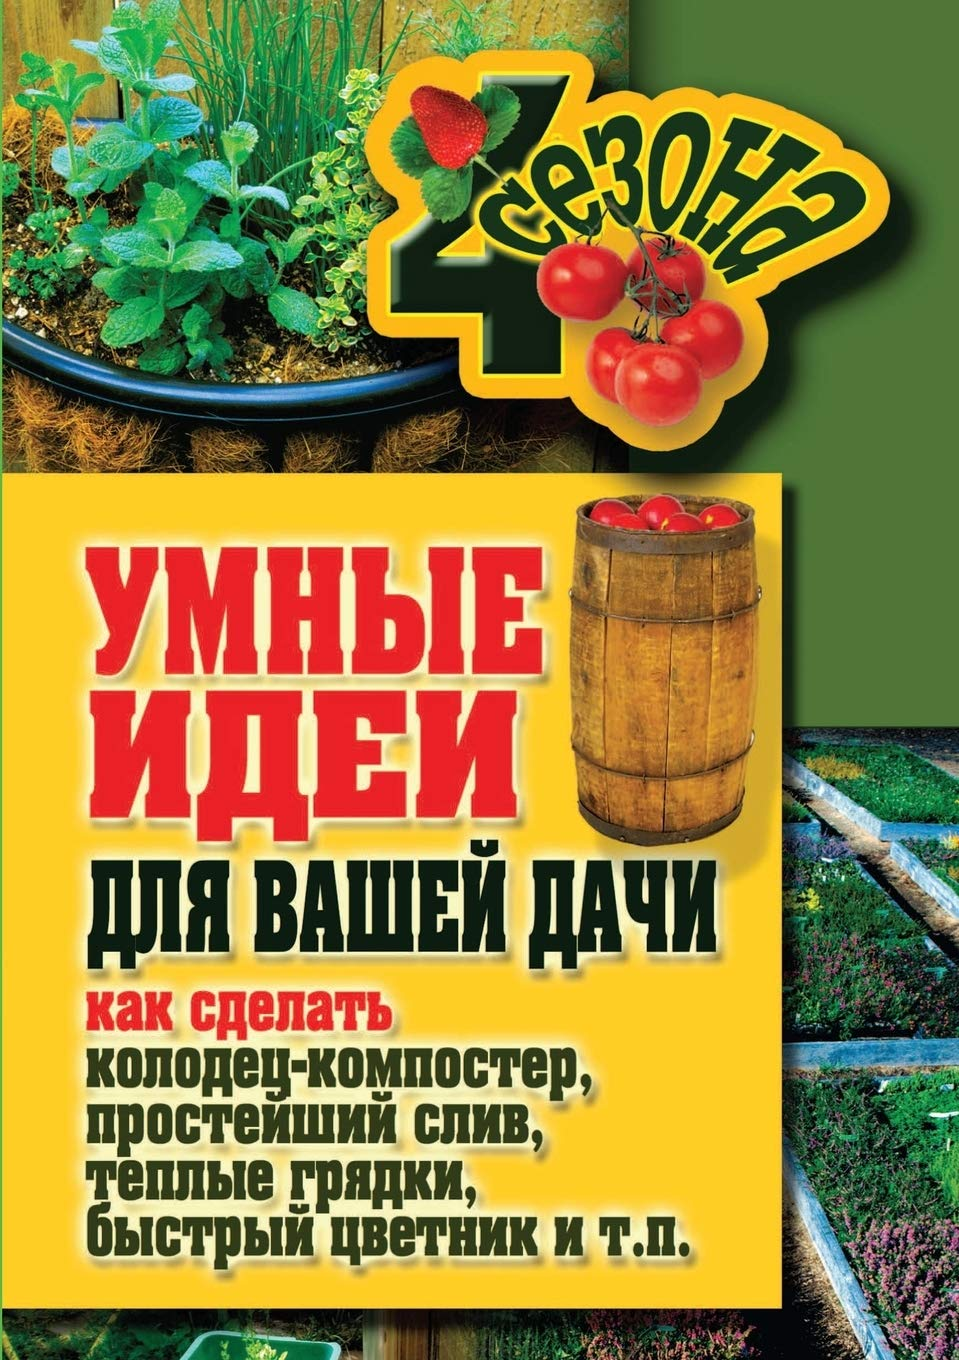 Smart Ideas For Your Garden How To Make A Well Punch A Simple Sink Warm Beds A Quick Flower Garden And So On N Russian Edition Zhmakin M S Plotnikova T F 9785519541947